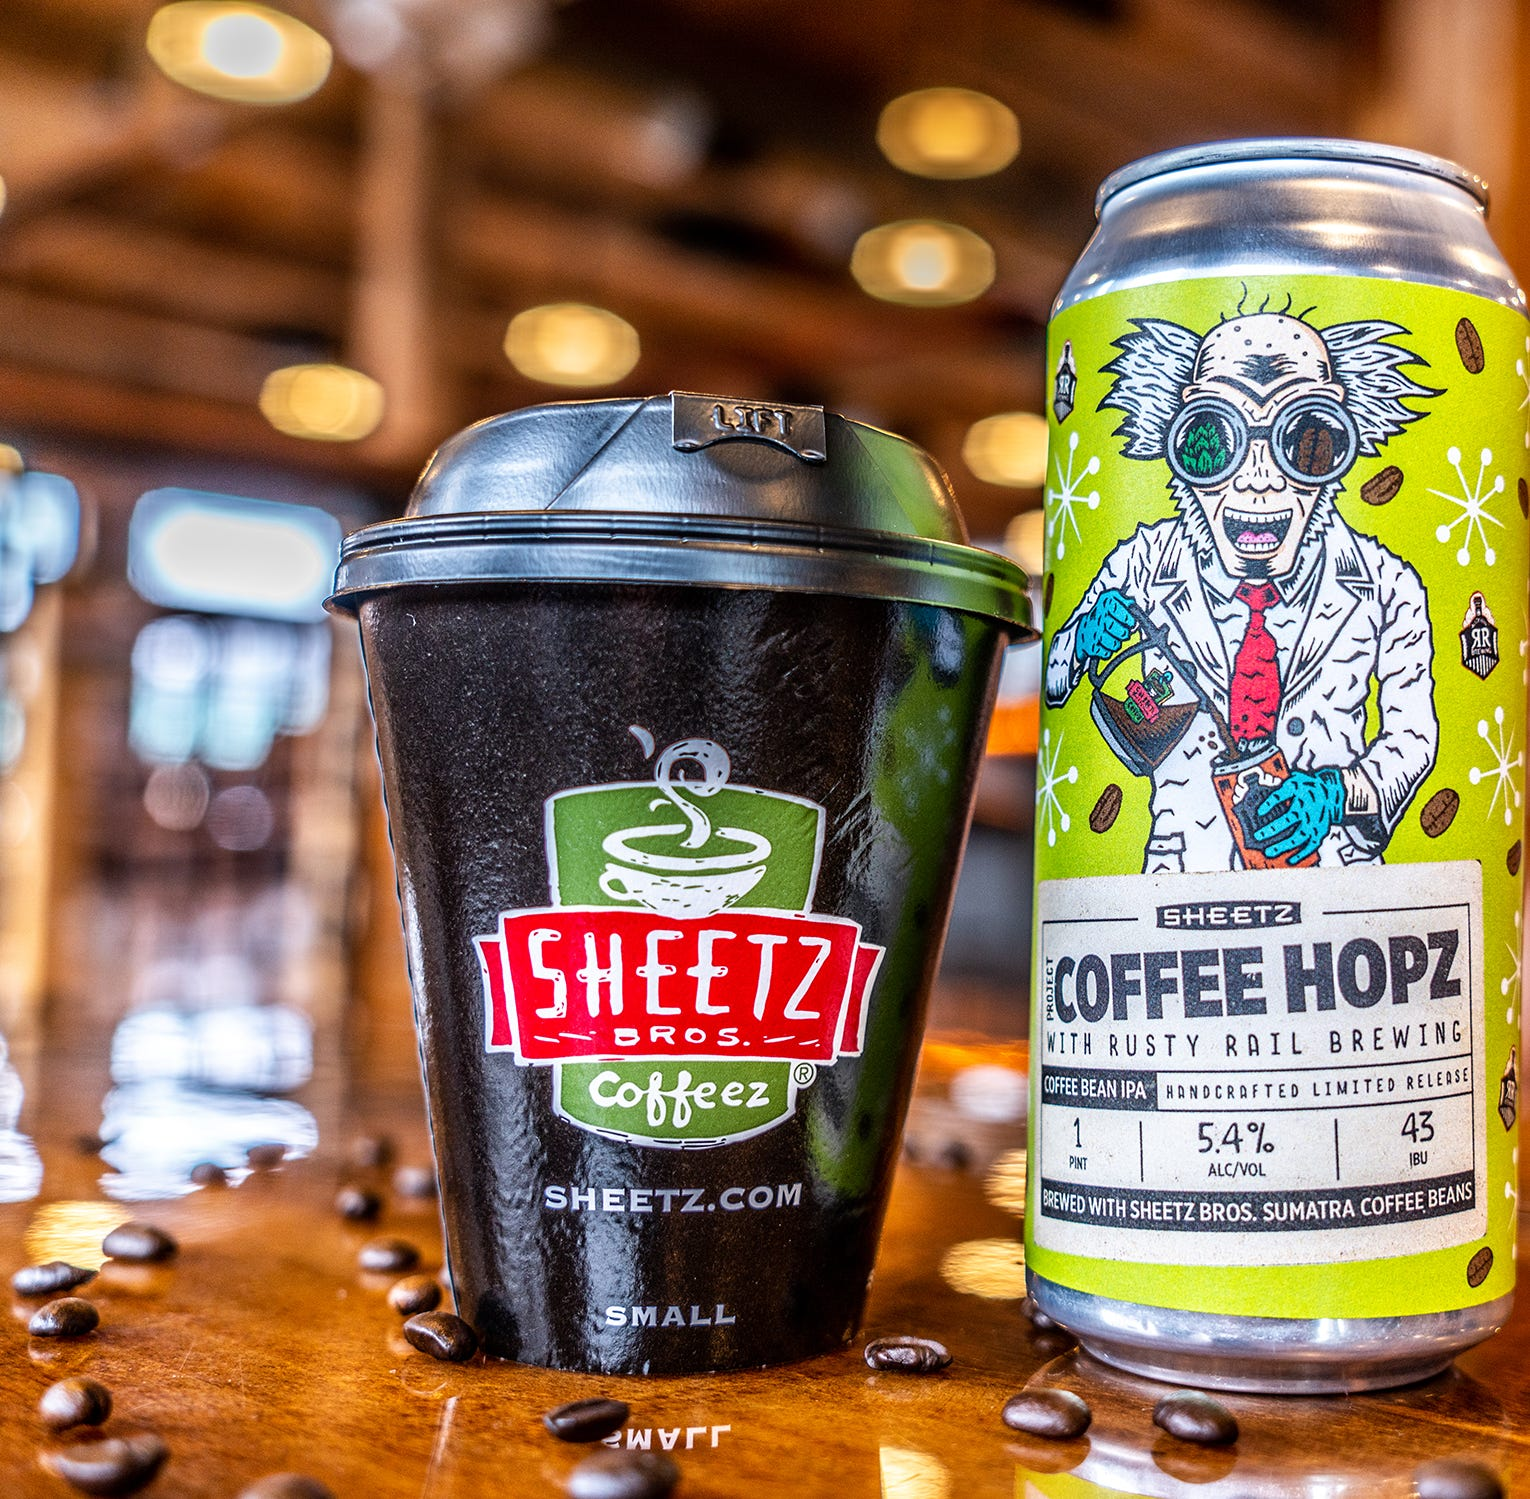 """York resident Zach Rupert designed the logo for the first-ever craft beer from Sheetz, """"Project Coffee Hopz."""" The chain teamed up with Rusty Rail Brewing Co. for coffee-infused IPA."""